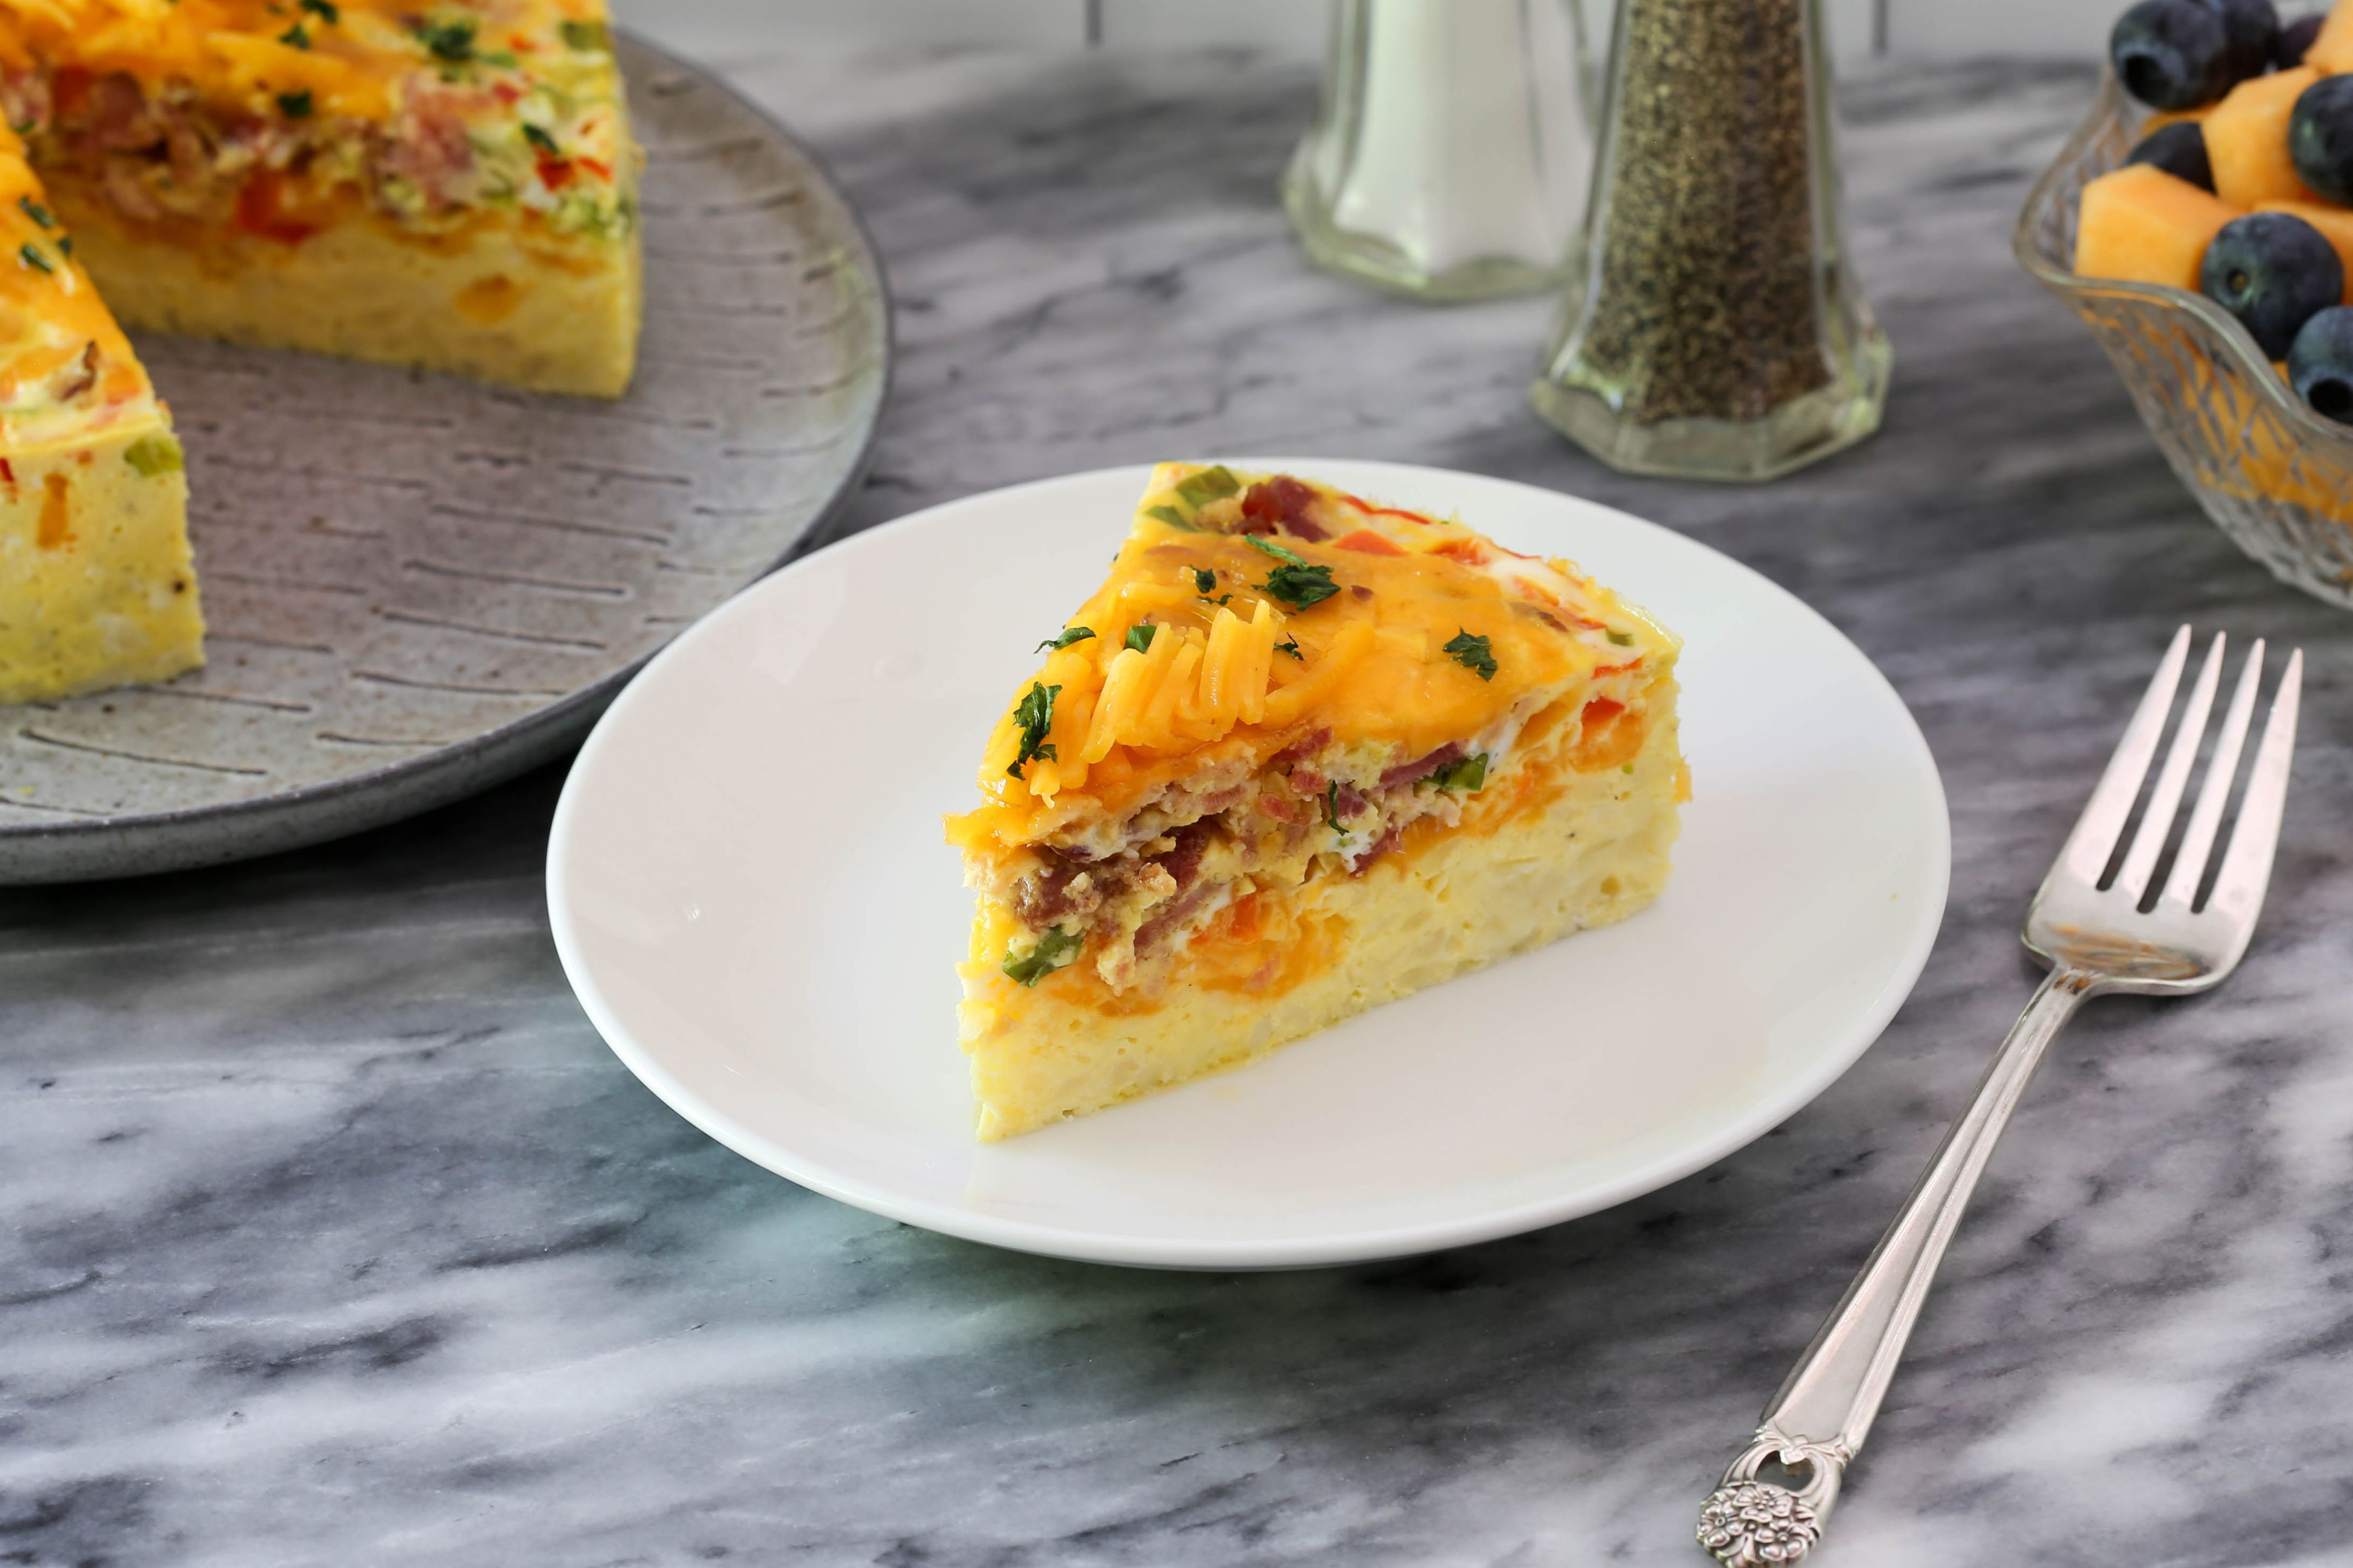 Feed the Family With This Time-Saving Instant Pot Breakfast Casserole